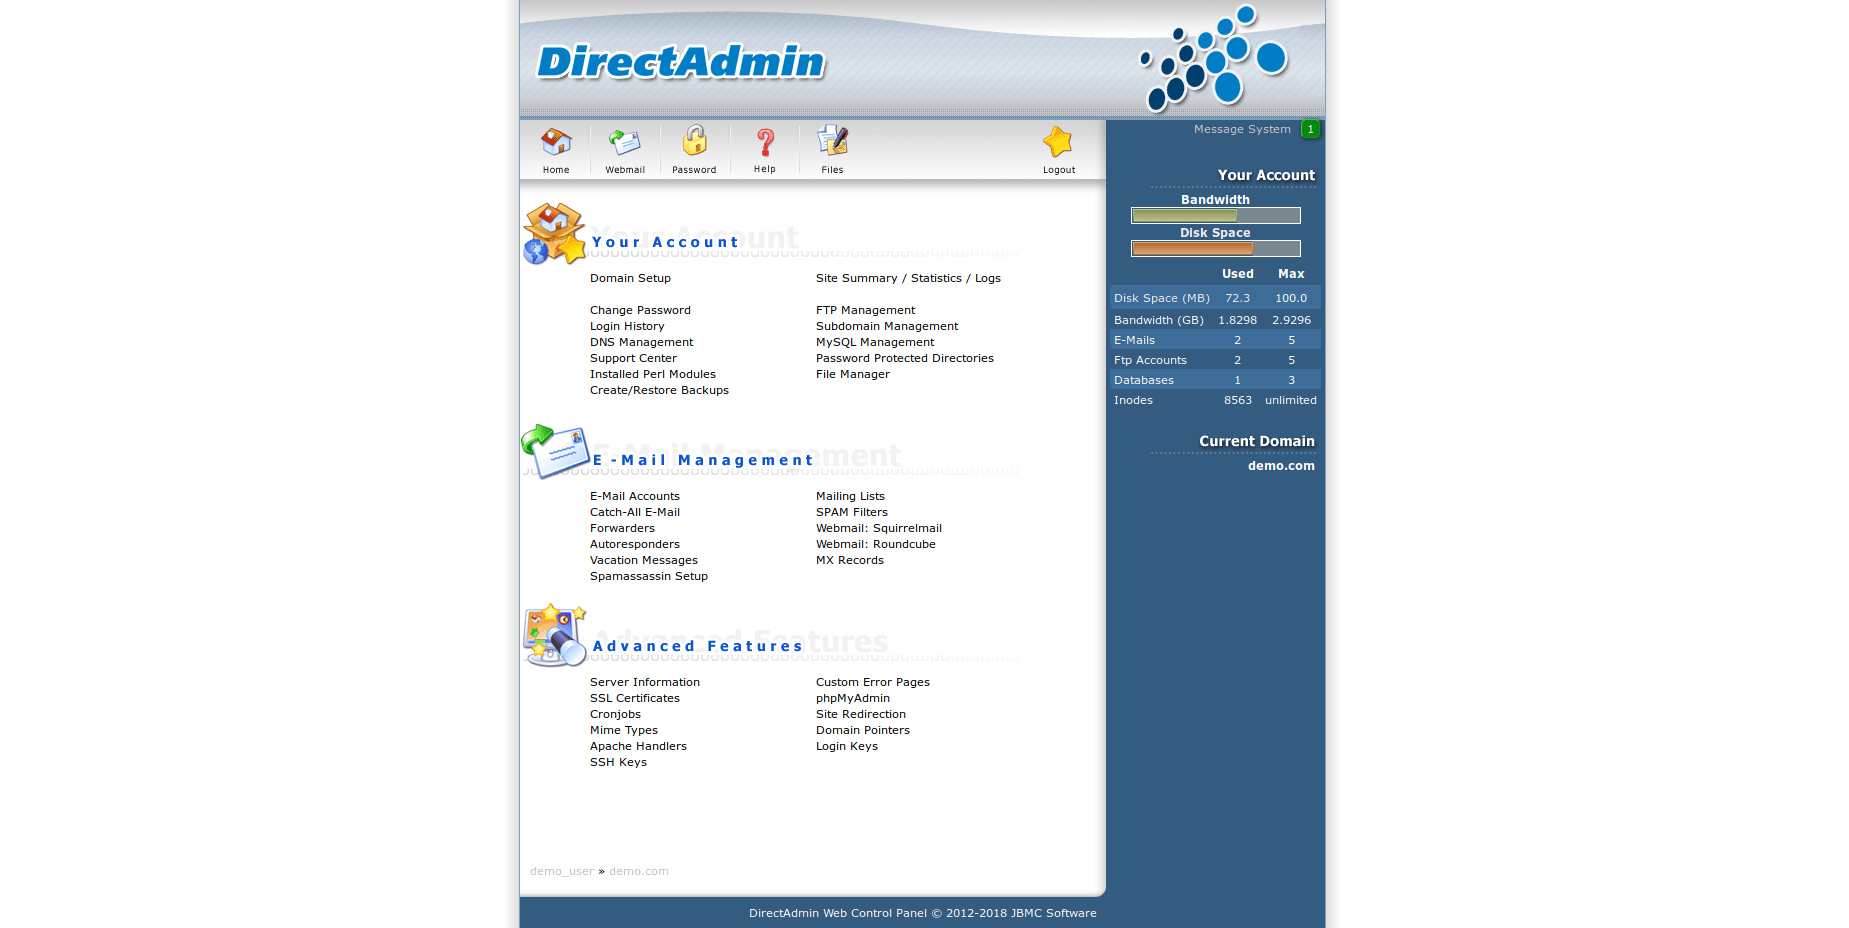 DirectAdmin websites view